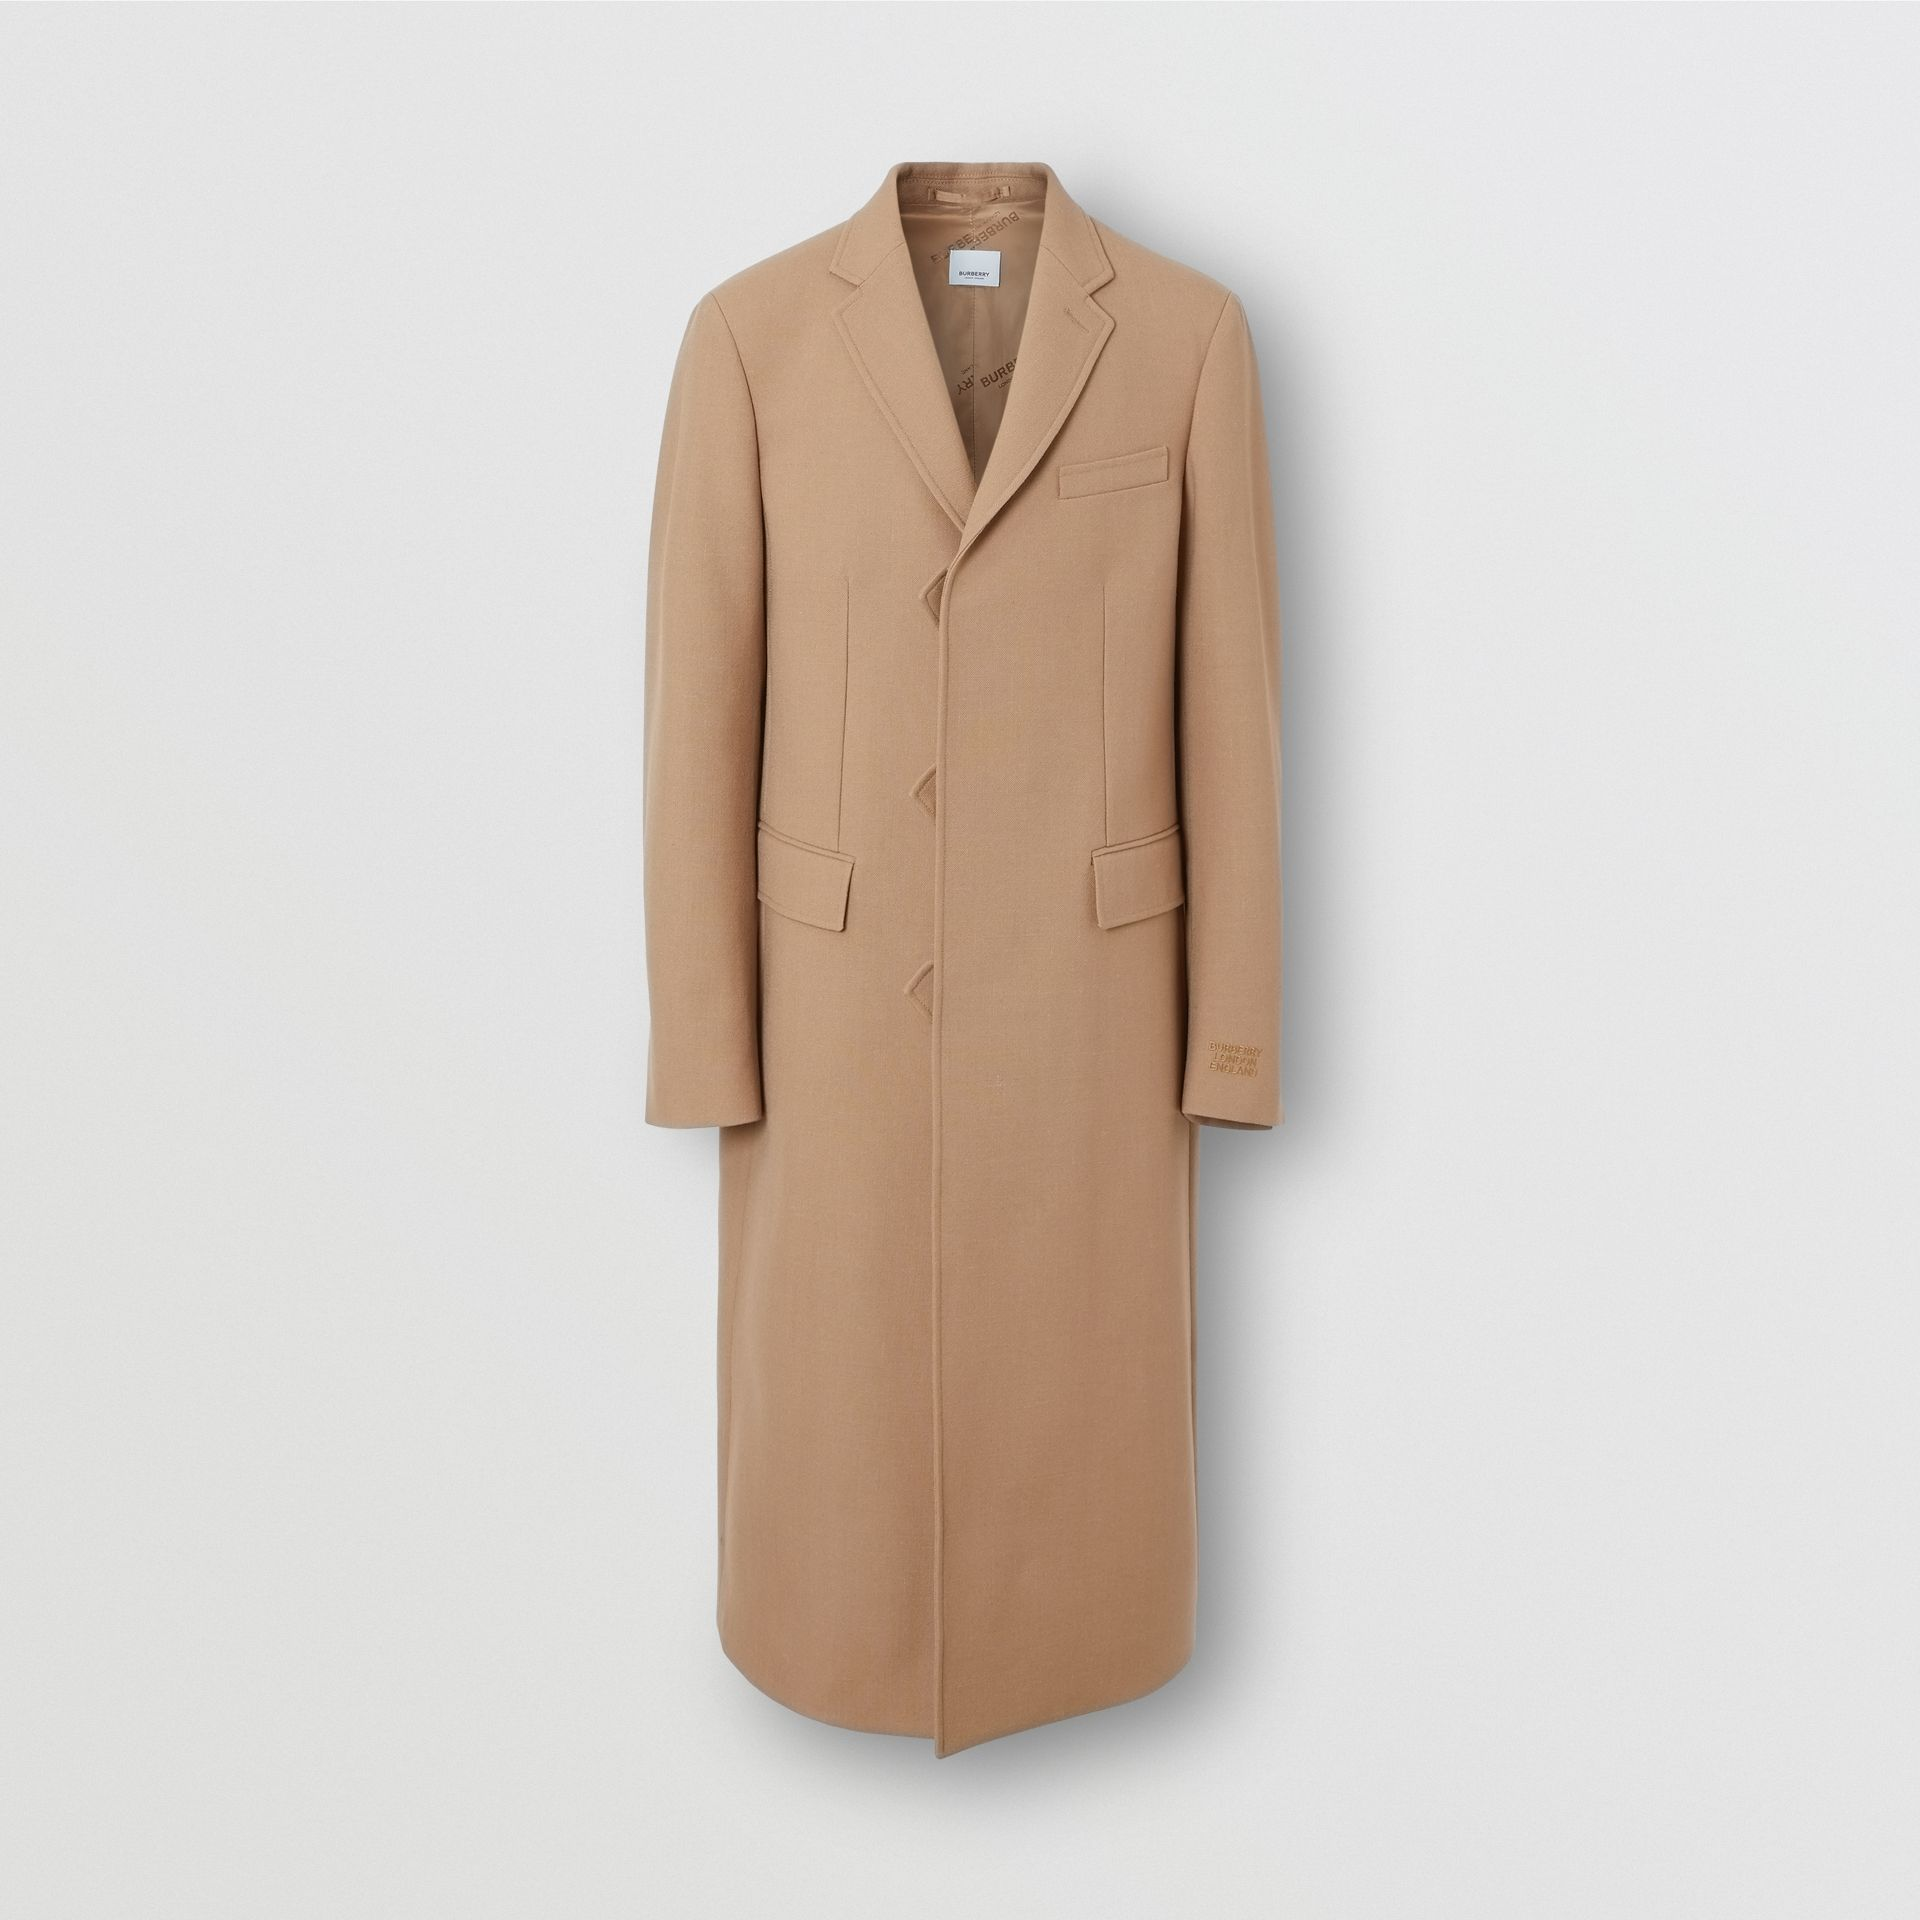 Logo Embroidered Wool Coat in Camel - Men | Burberry Singapore - gallery image 2